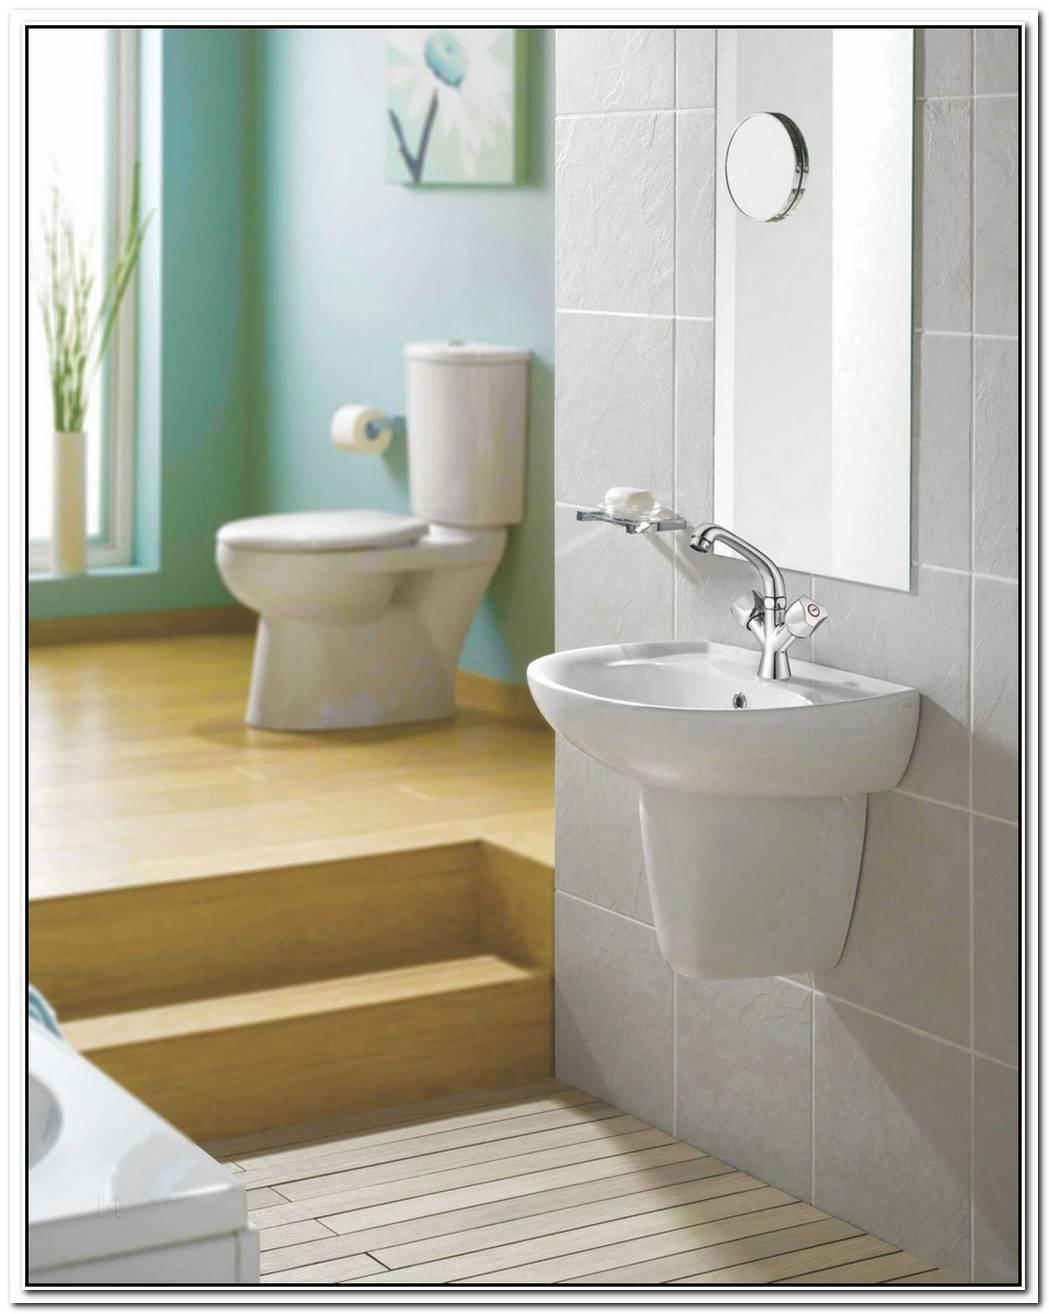 Three Dimensional Bathroom Accessories For You